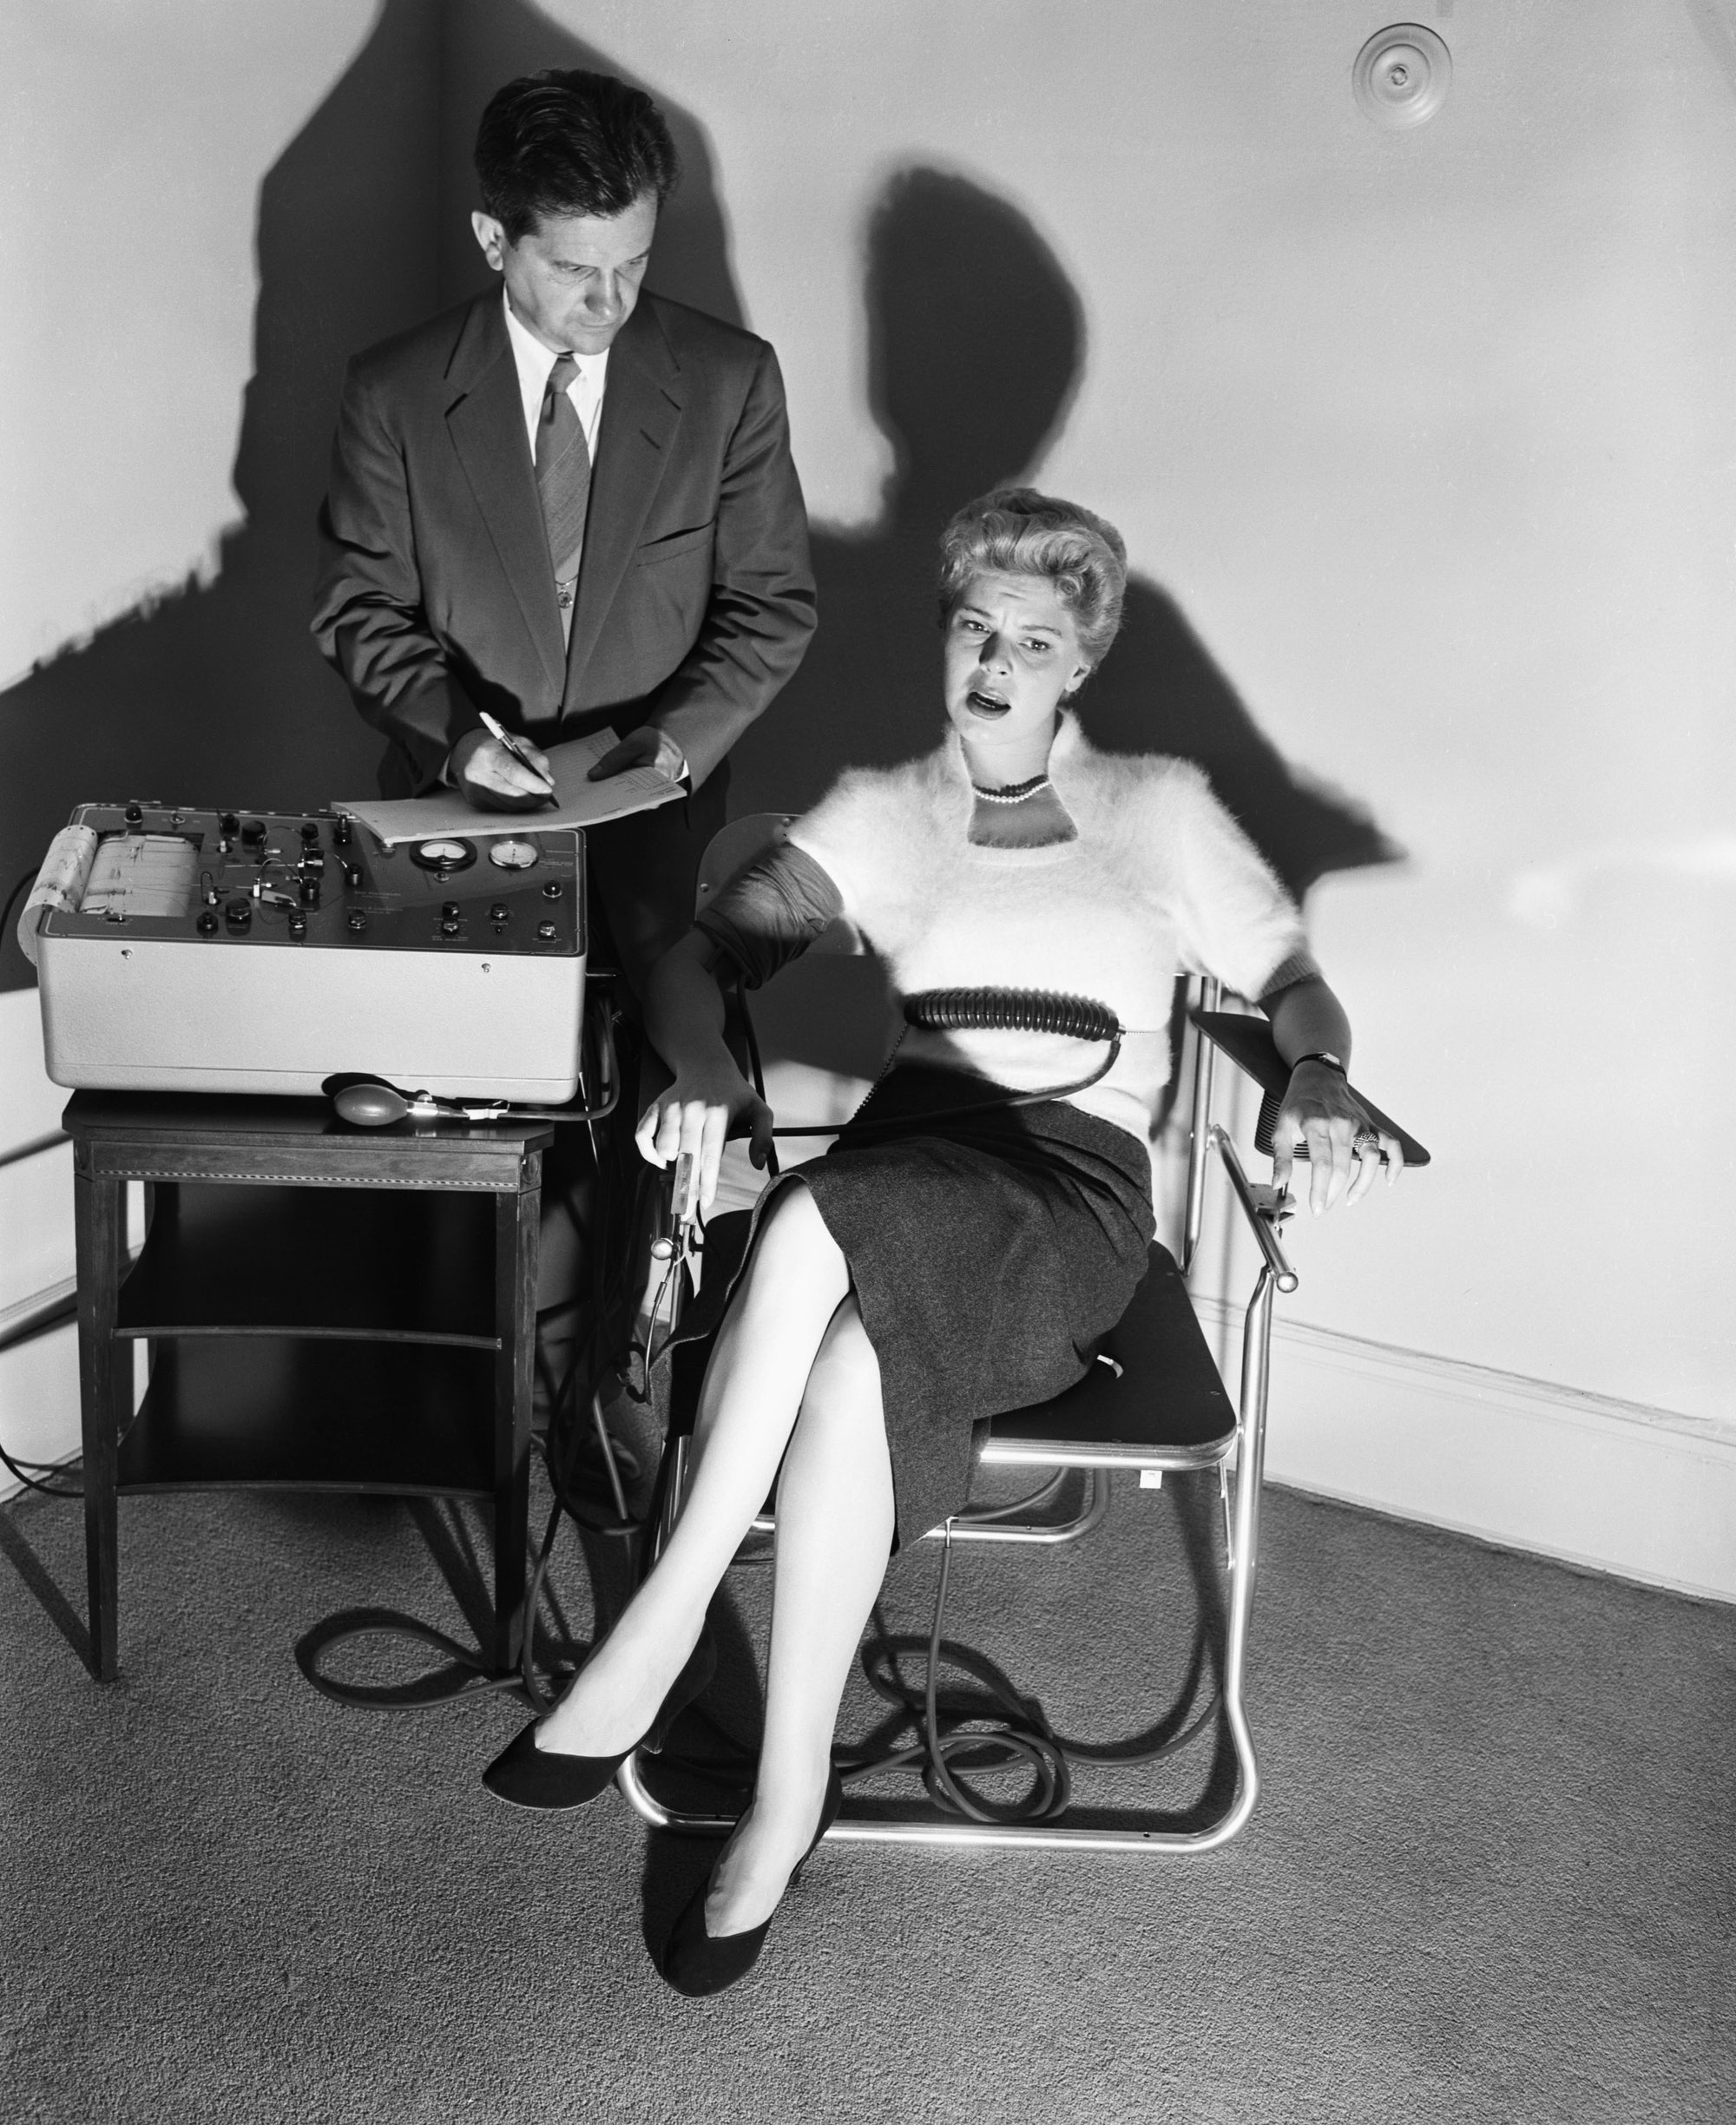 Original Caption: 6/4/1954- Lie detector being demonstrated by Dr. Fred Inbau, professor of criminal law at Northwestern University. Photo shows Dr. Inbau giving the test to pretty Betsey Palmer.